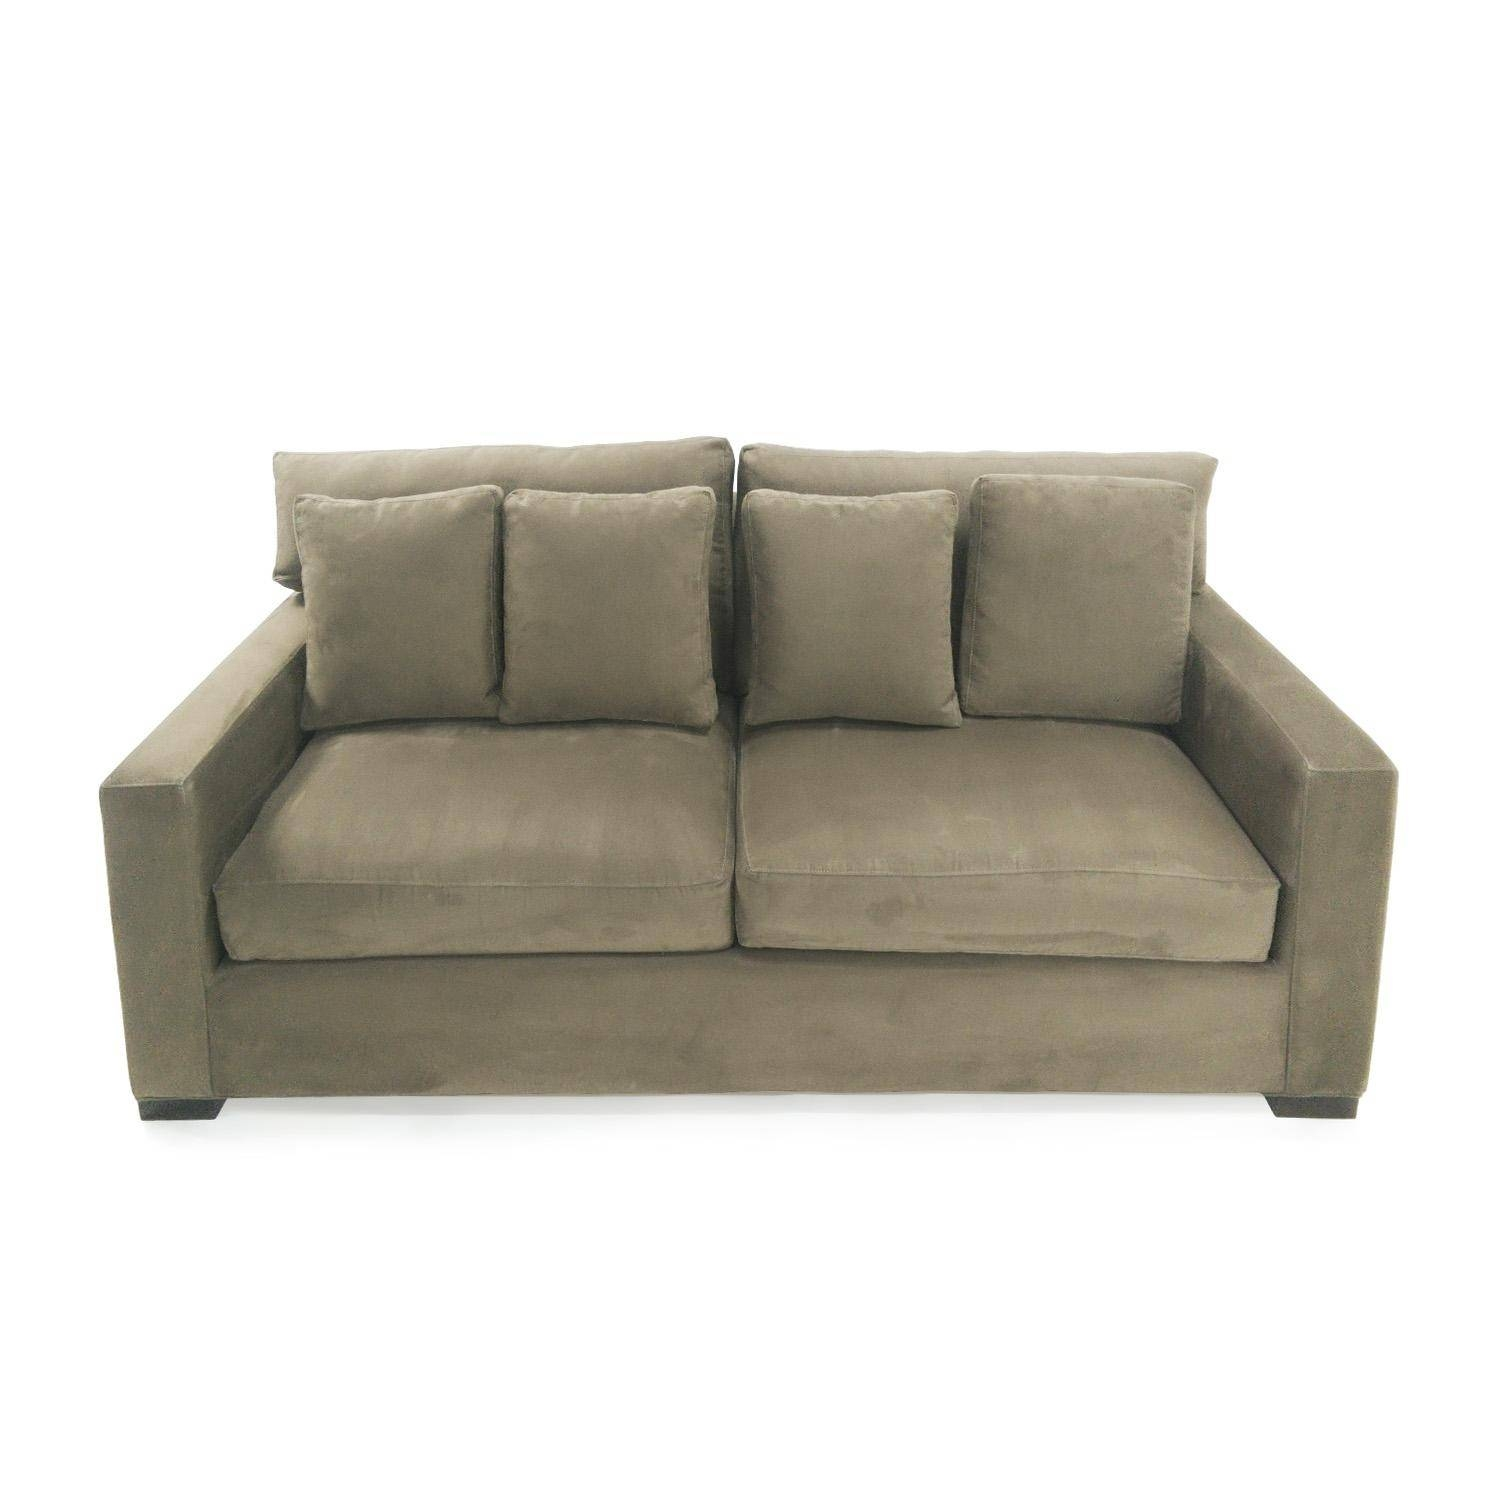 20 Collection Of Antoinette Fainting Sofas | Sofa Ideas pertaining to Antoinette Sofas (Image 2 of 15)